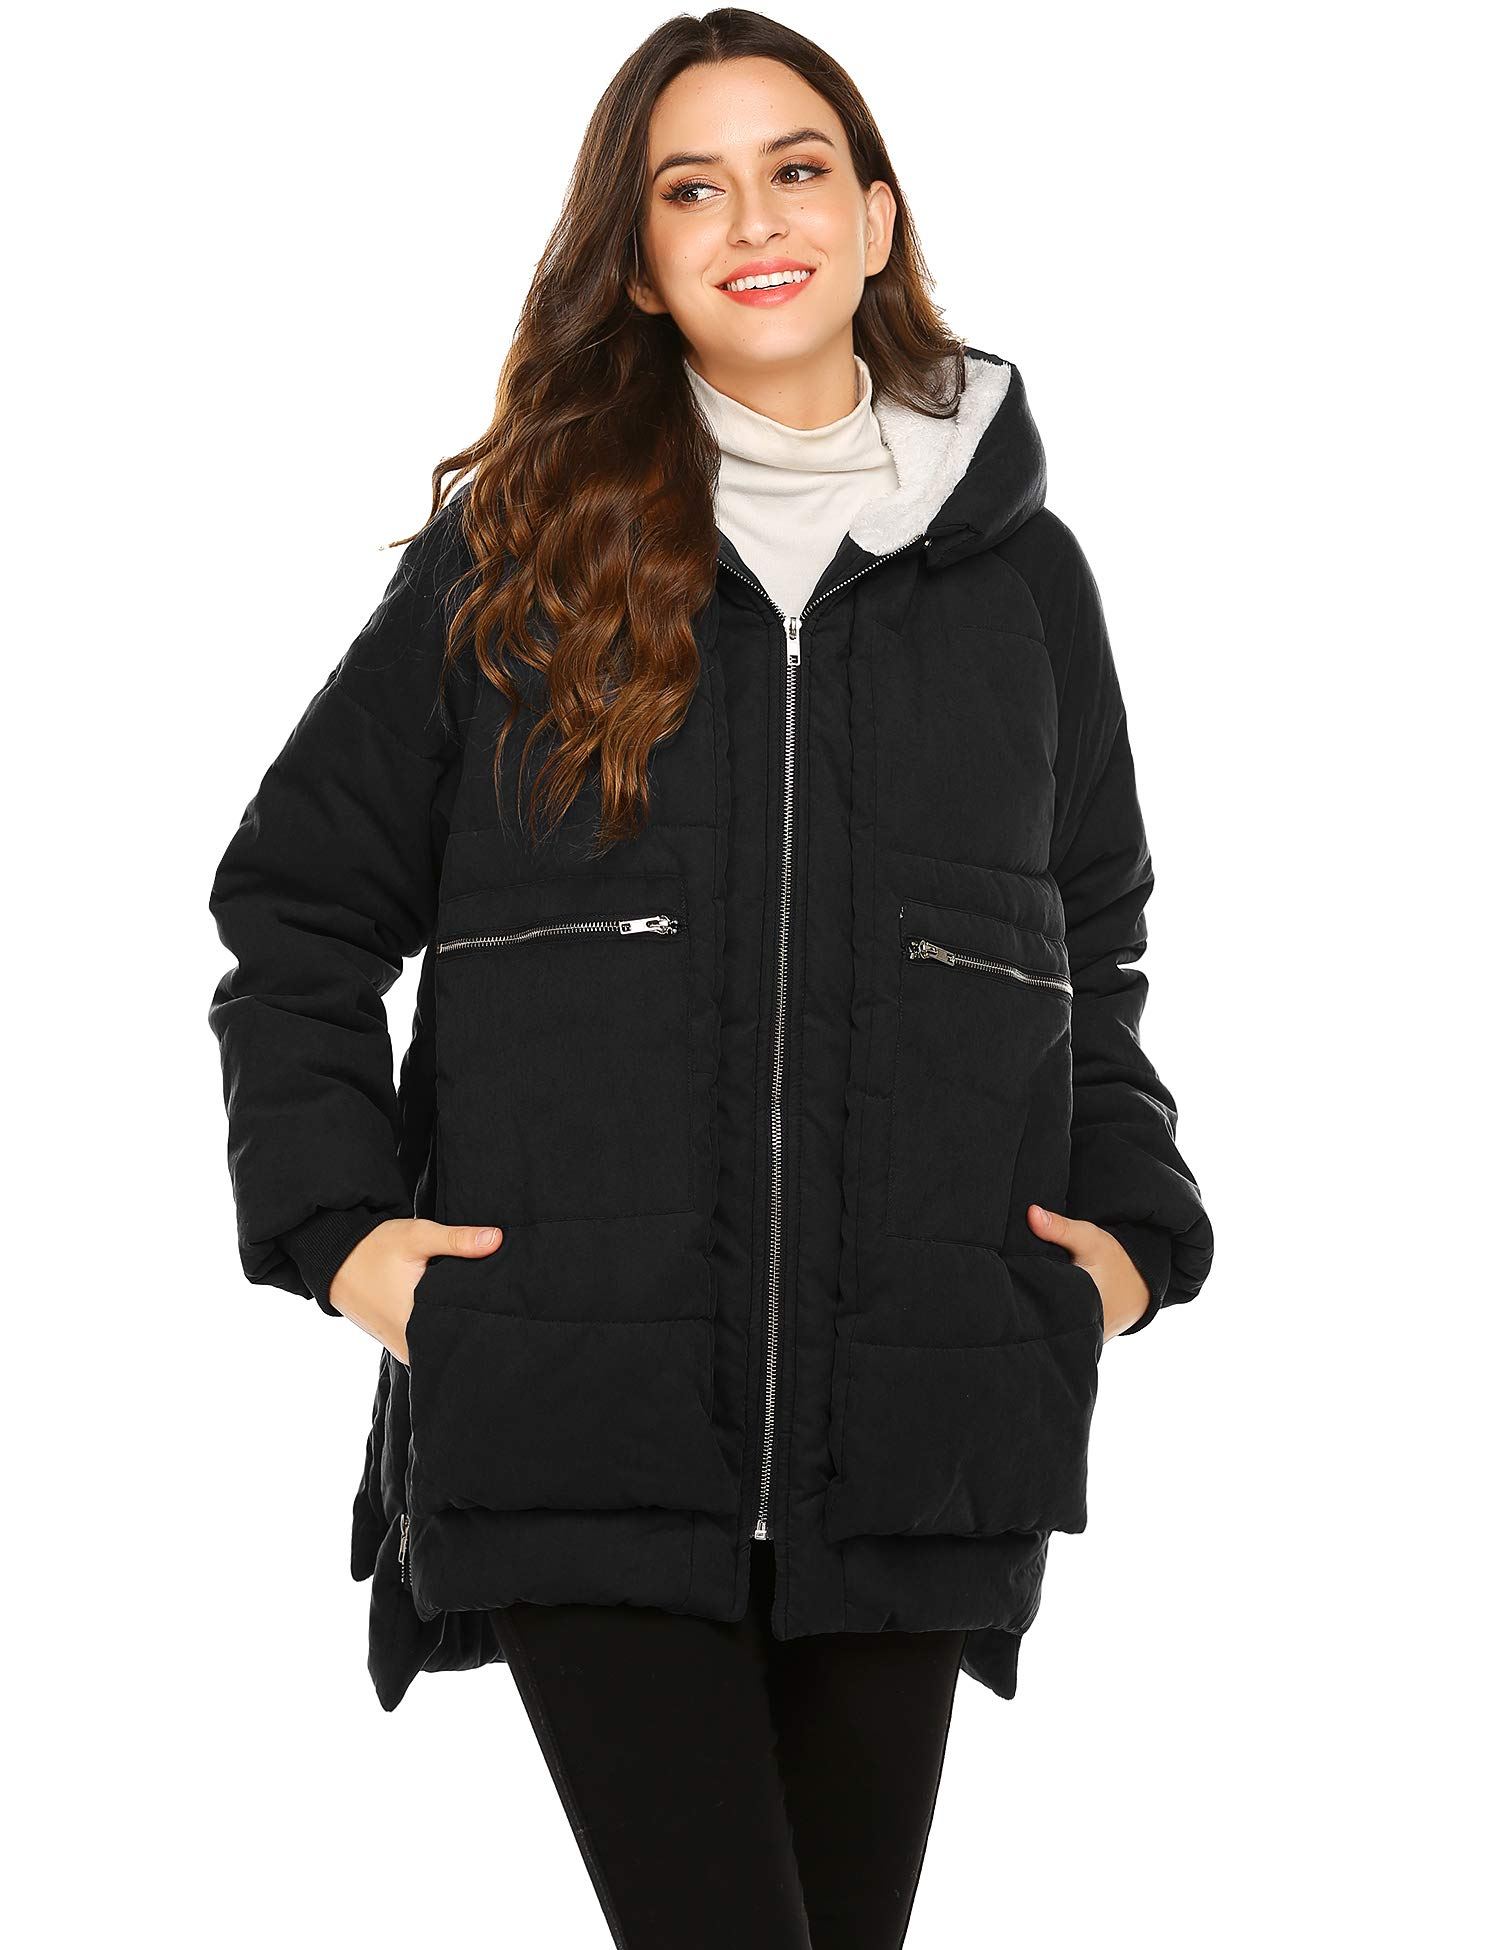 Beyove Women's Long Down Coat with Fleece Lined Hood Very Warm Zip Parka Puffer Jacket Plus Size (Black,S) by Beyove